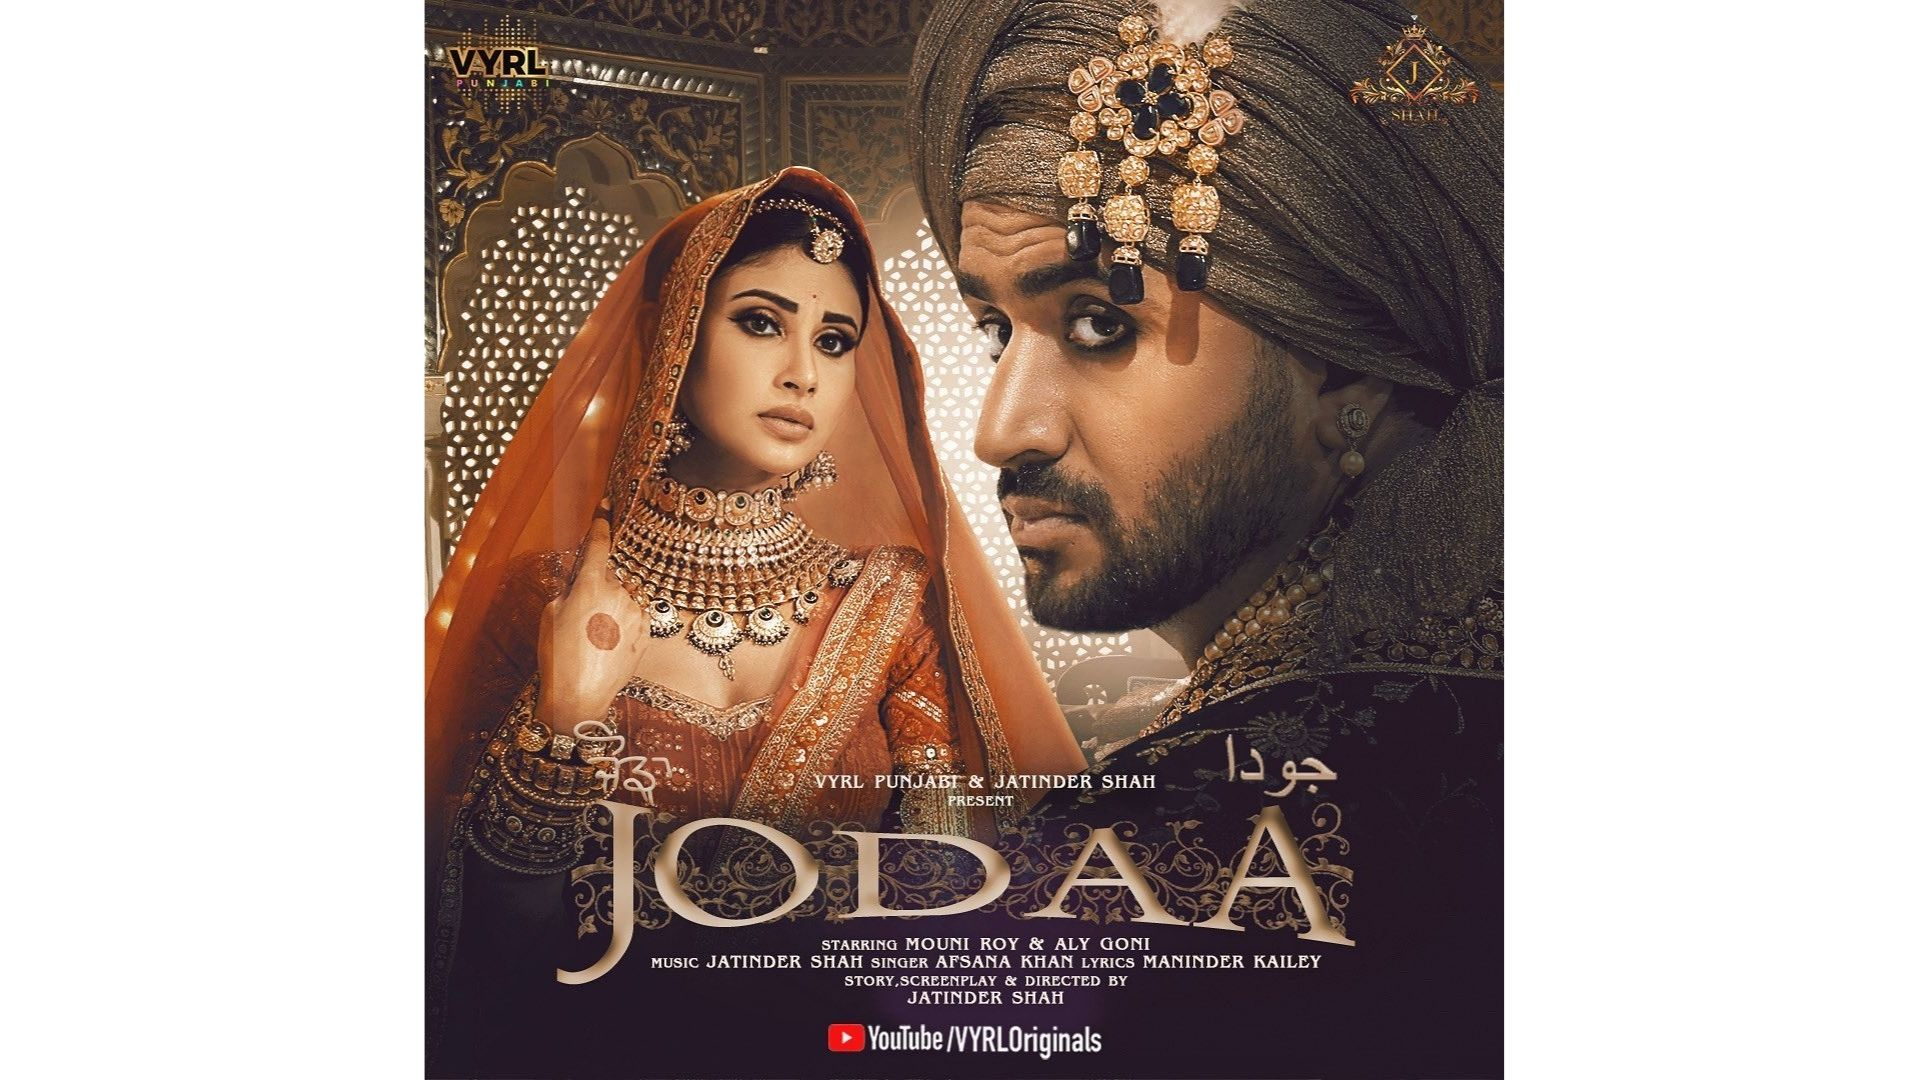 Jodaa Poster: Mouni Roy And Aly Goni's Megastic Music Video To Come Out Soon